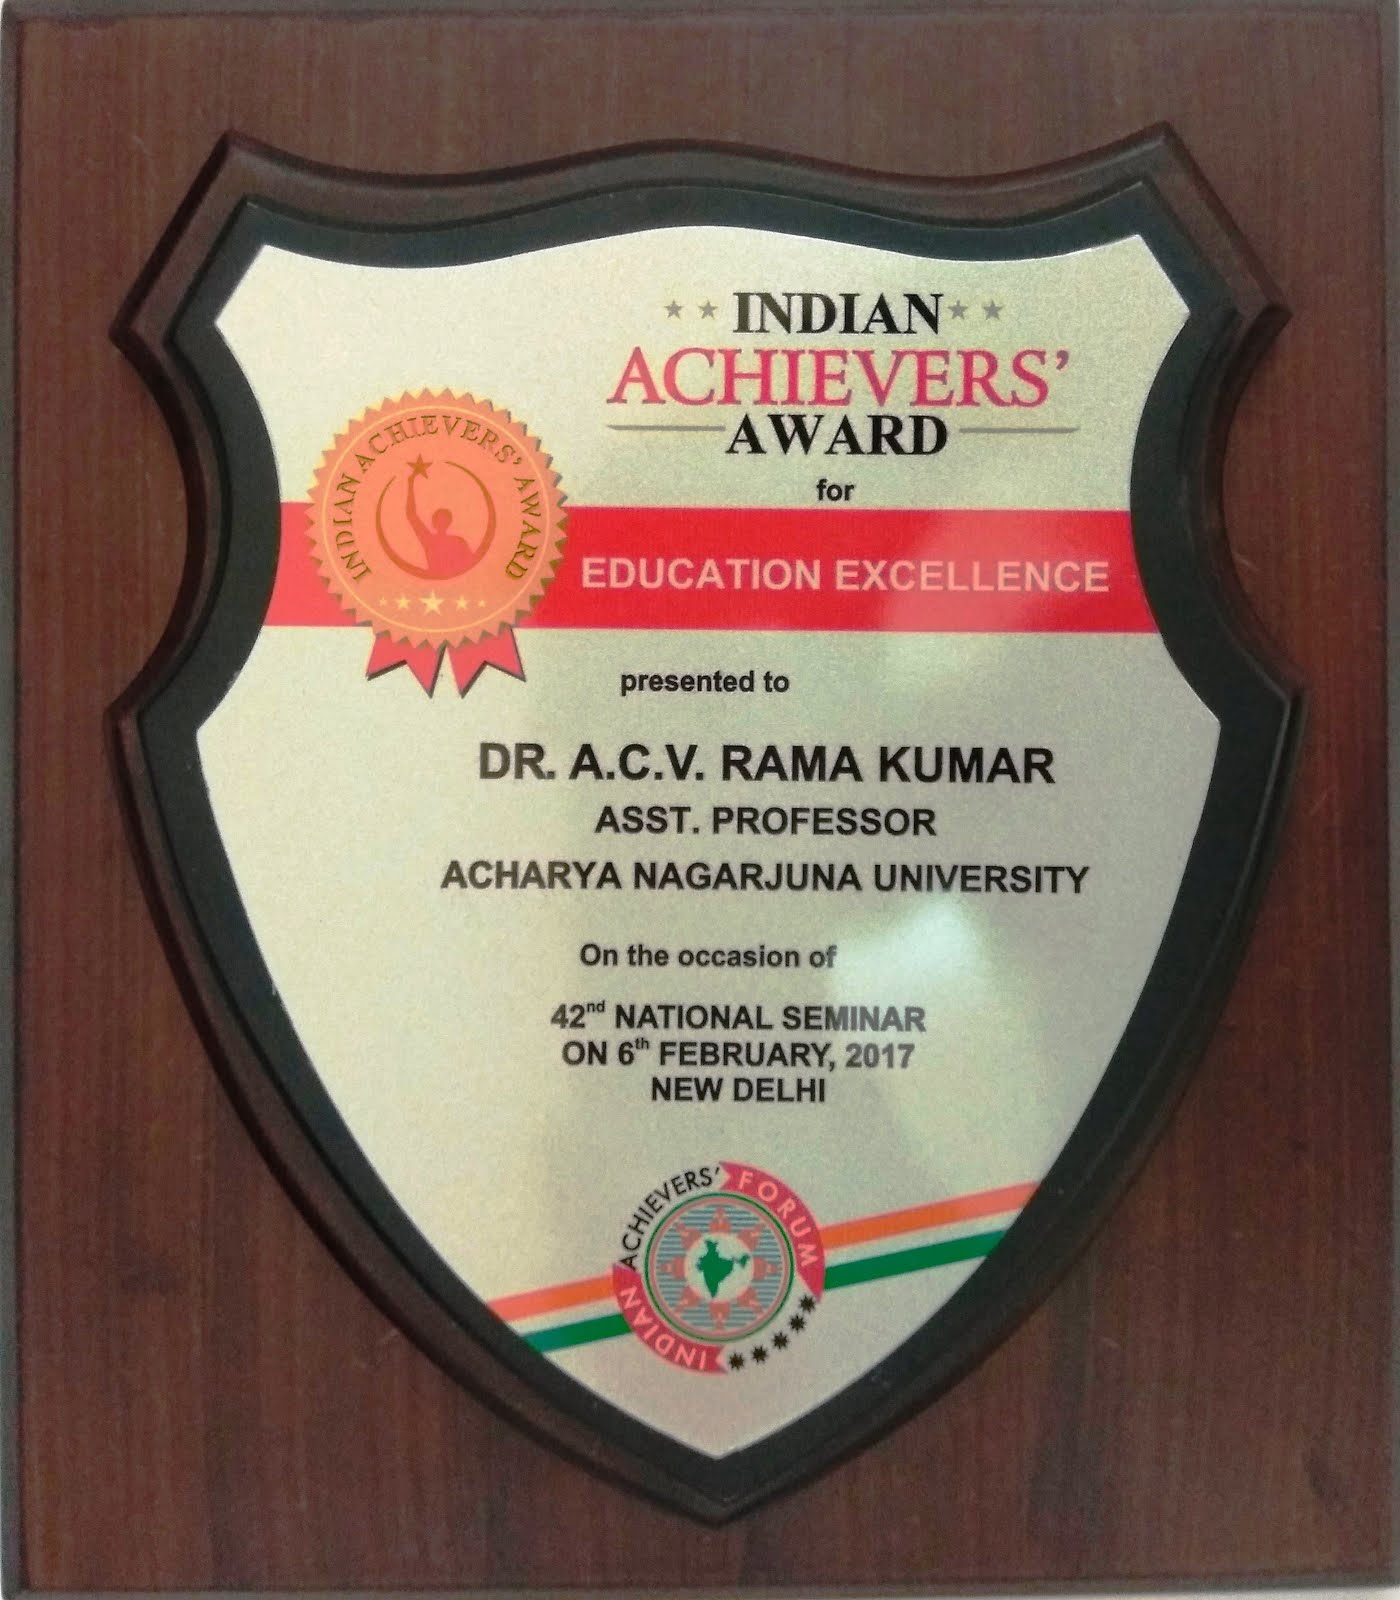 INDIAN ACHIEVERS' AWARD